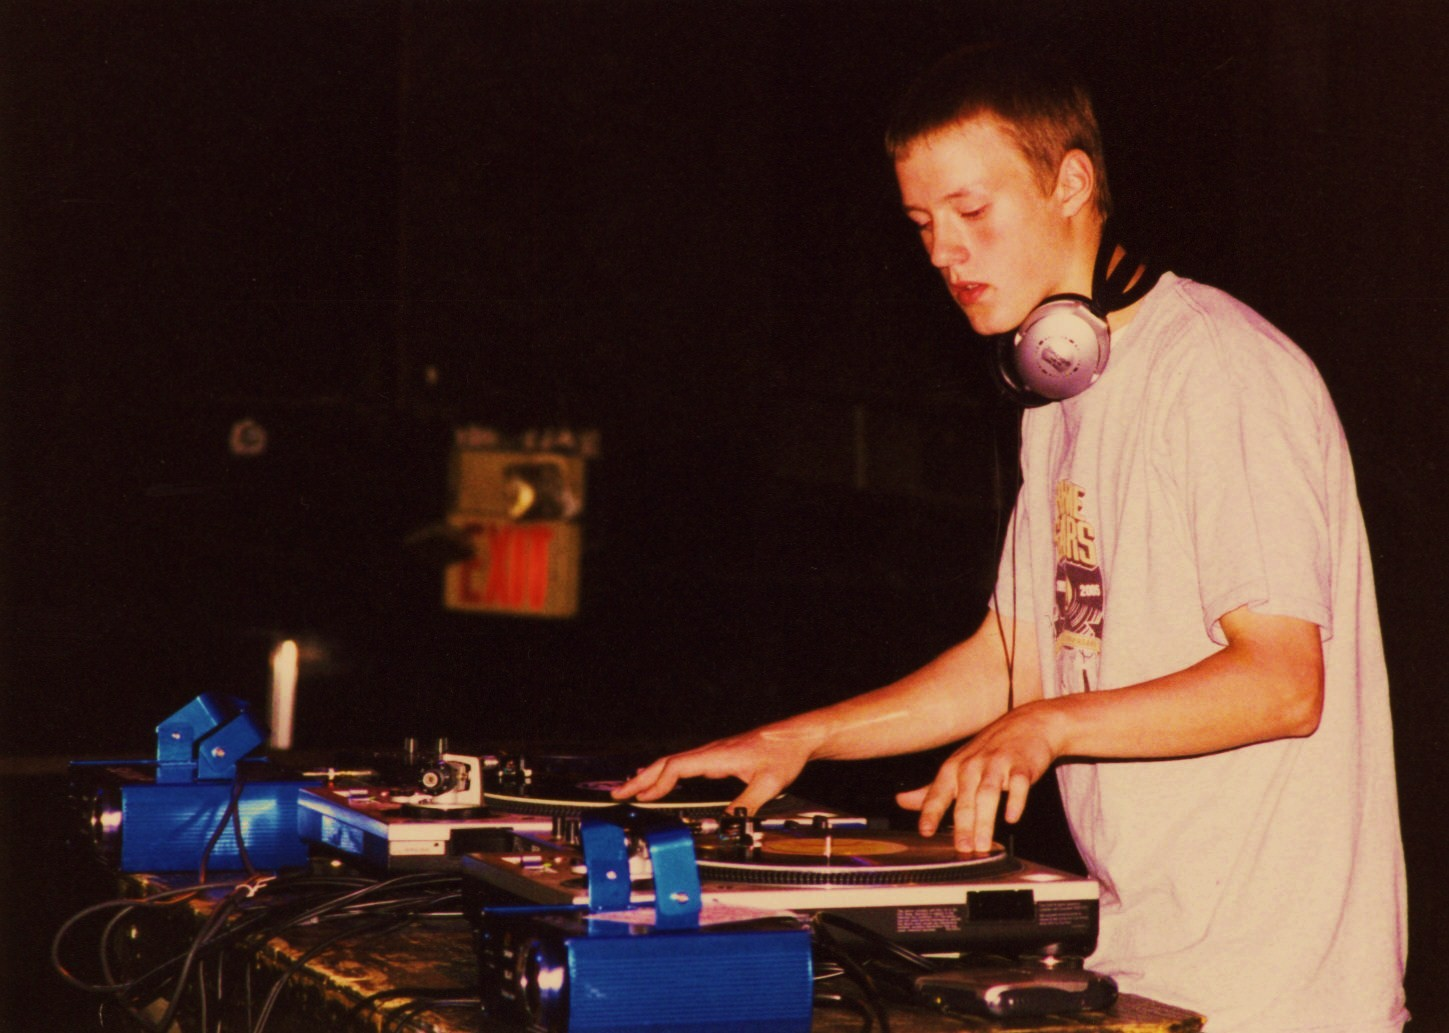 DJ X-plore battles on stage at First Ave, 2004.